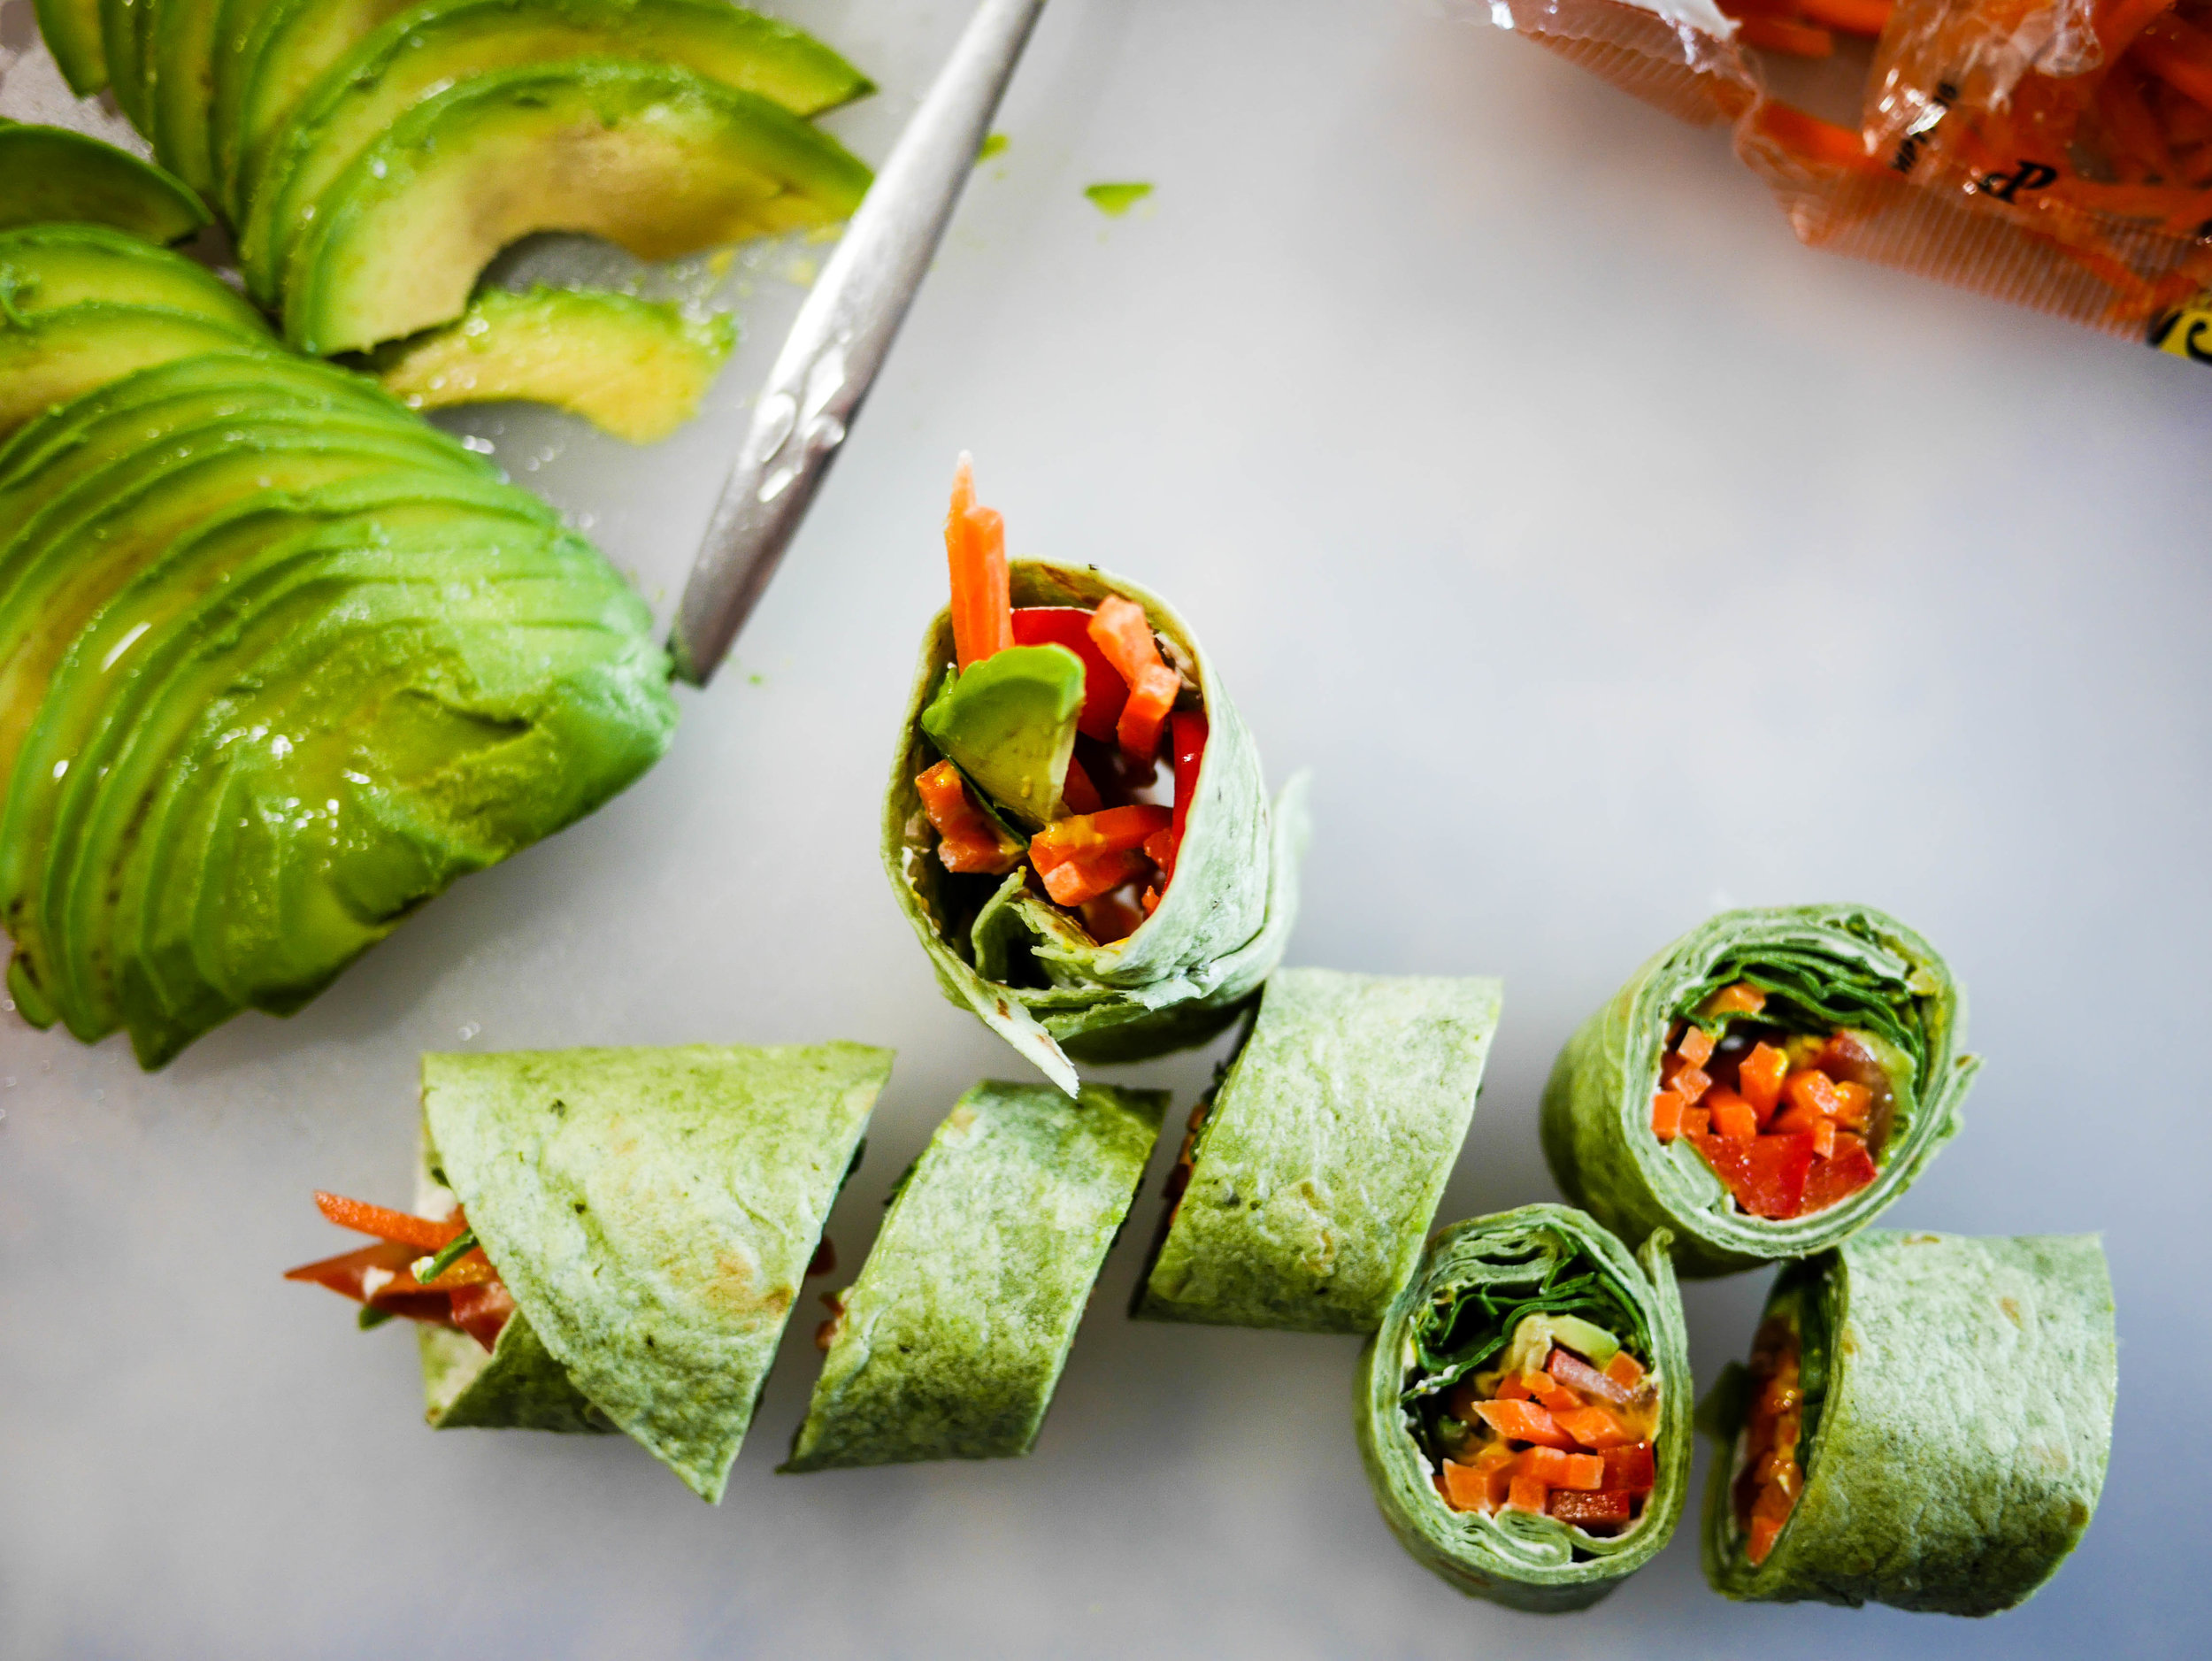 Colorful, healthy and delicious! These veggie wraps couldn't be easier and are perfect bite sized snacks for any occasion.